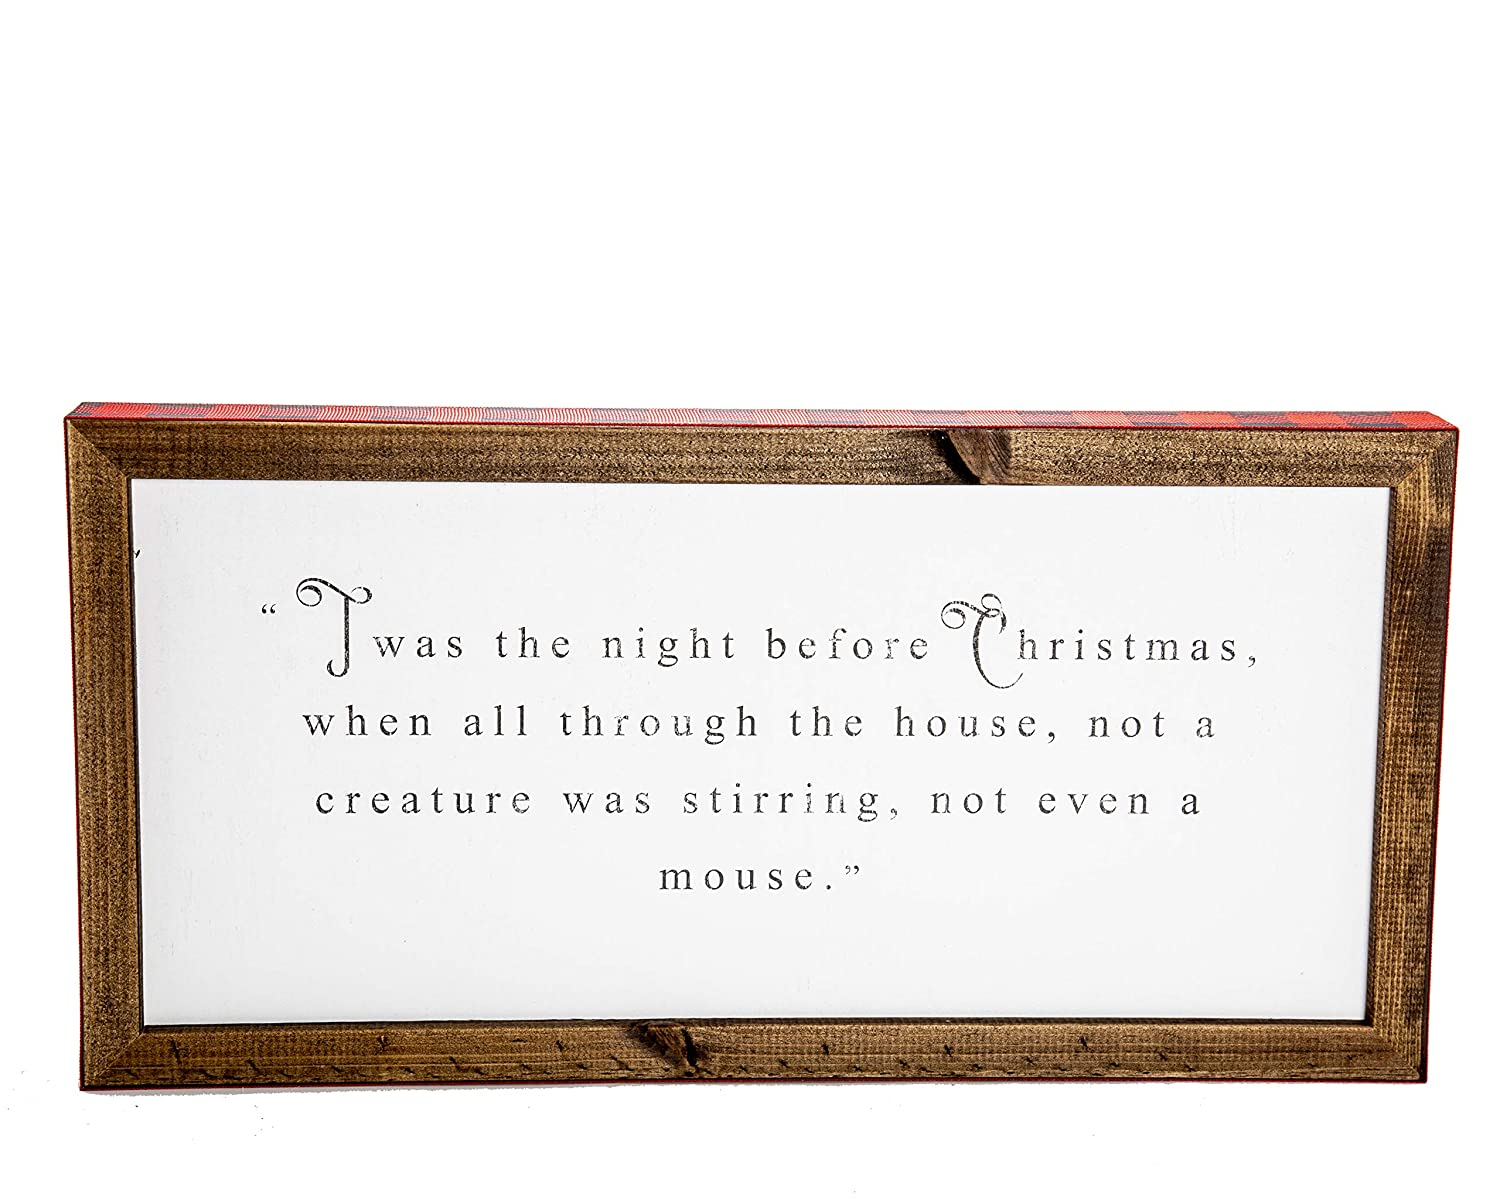 Relive Twas The Night Before Christmas Poem Wooden Box Sign With Buffalo Plaid Trim Inspirational Home Christmas Decor